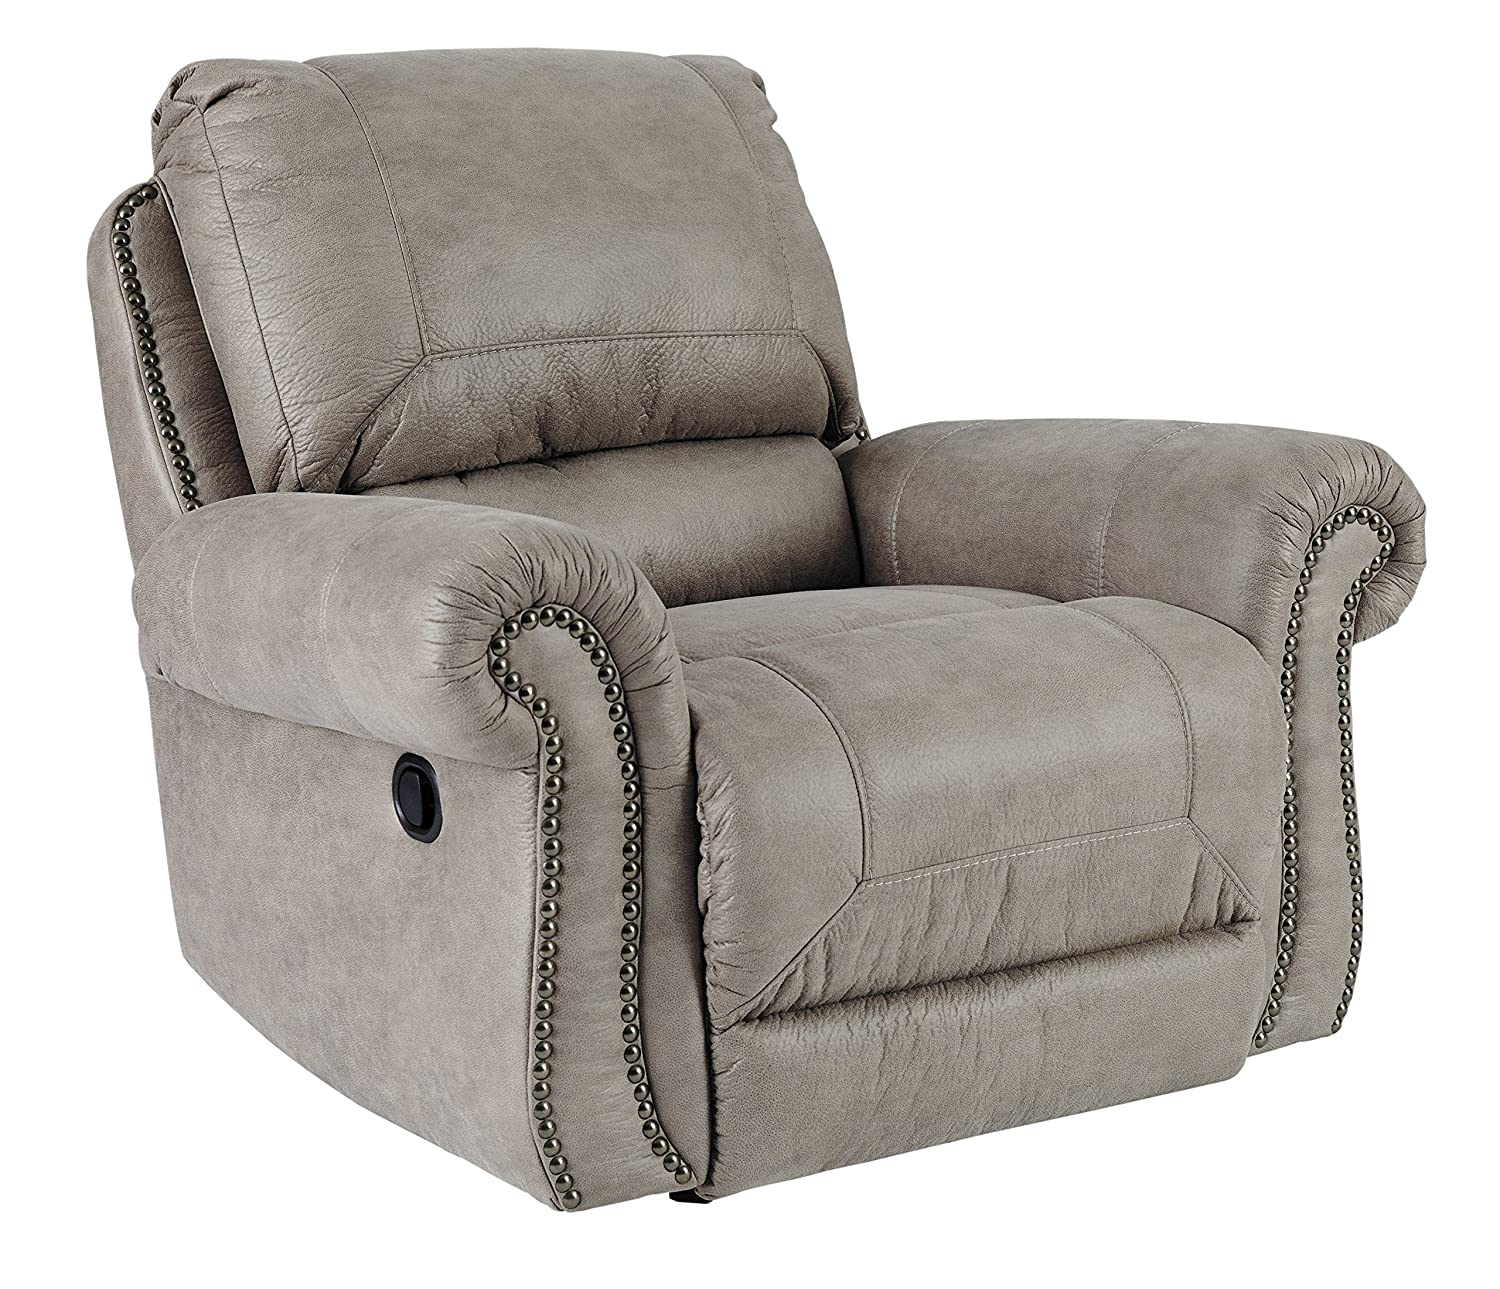 Amazon com ashley furniture signature design olsberg traditional rocker recliner with nailhead trim pull tab reclining steel kitchen dining